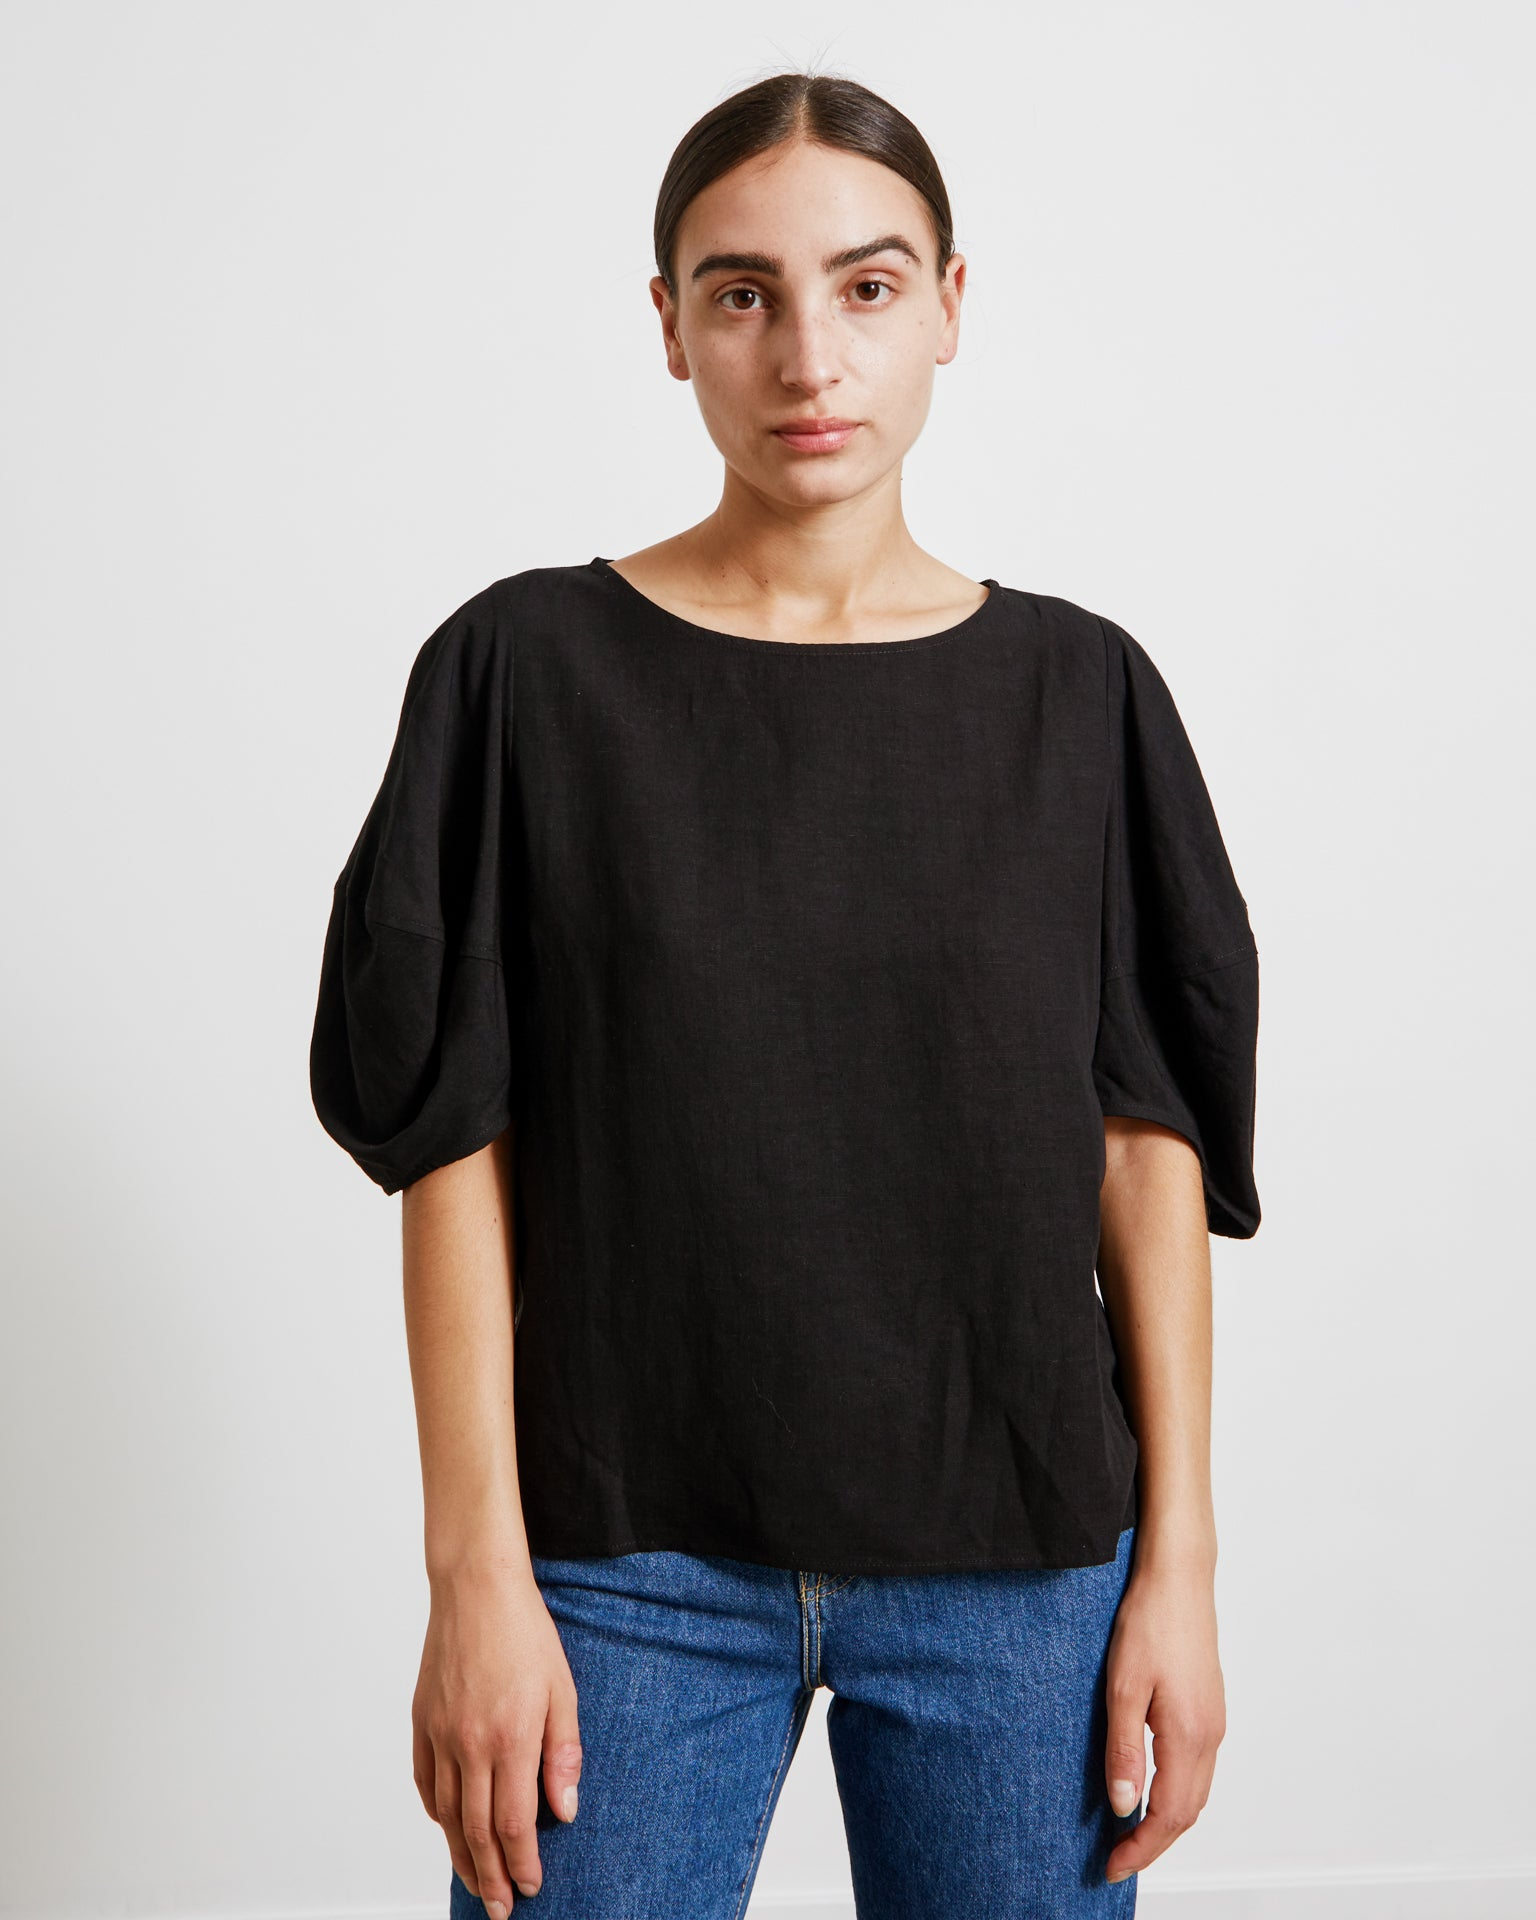 Balloon Sleeve Top in Black